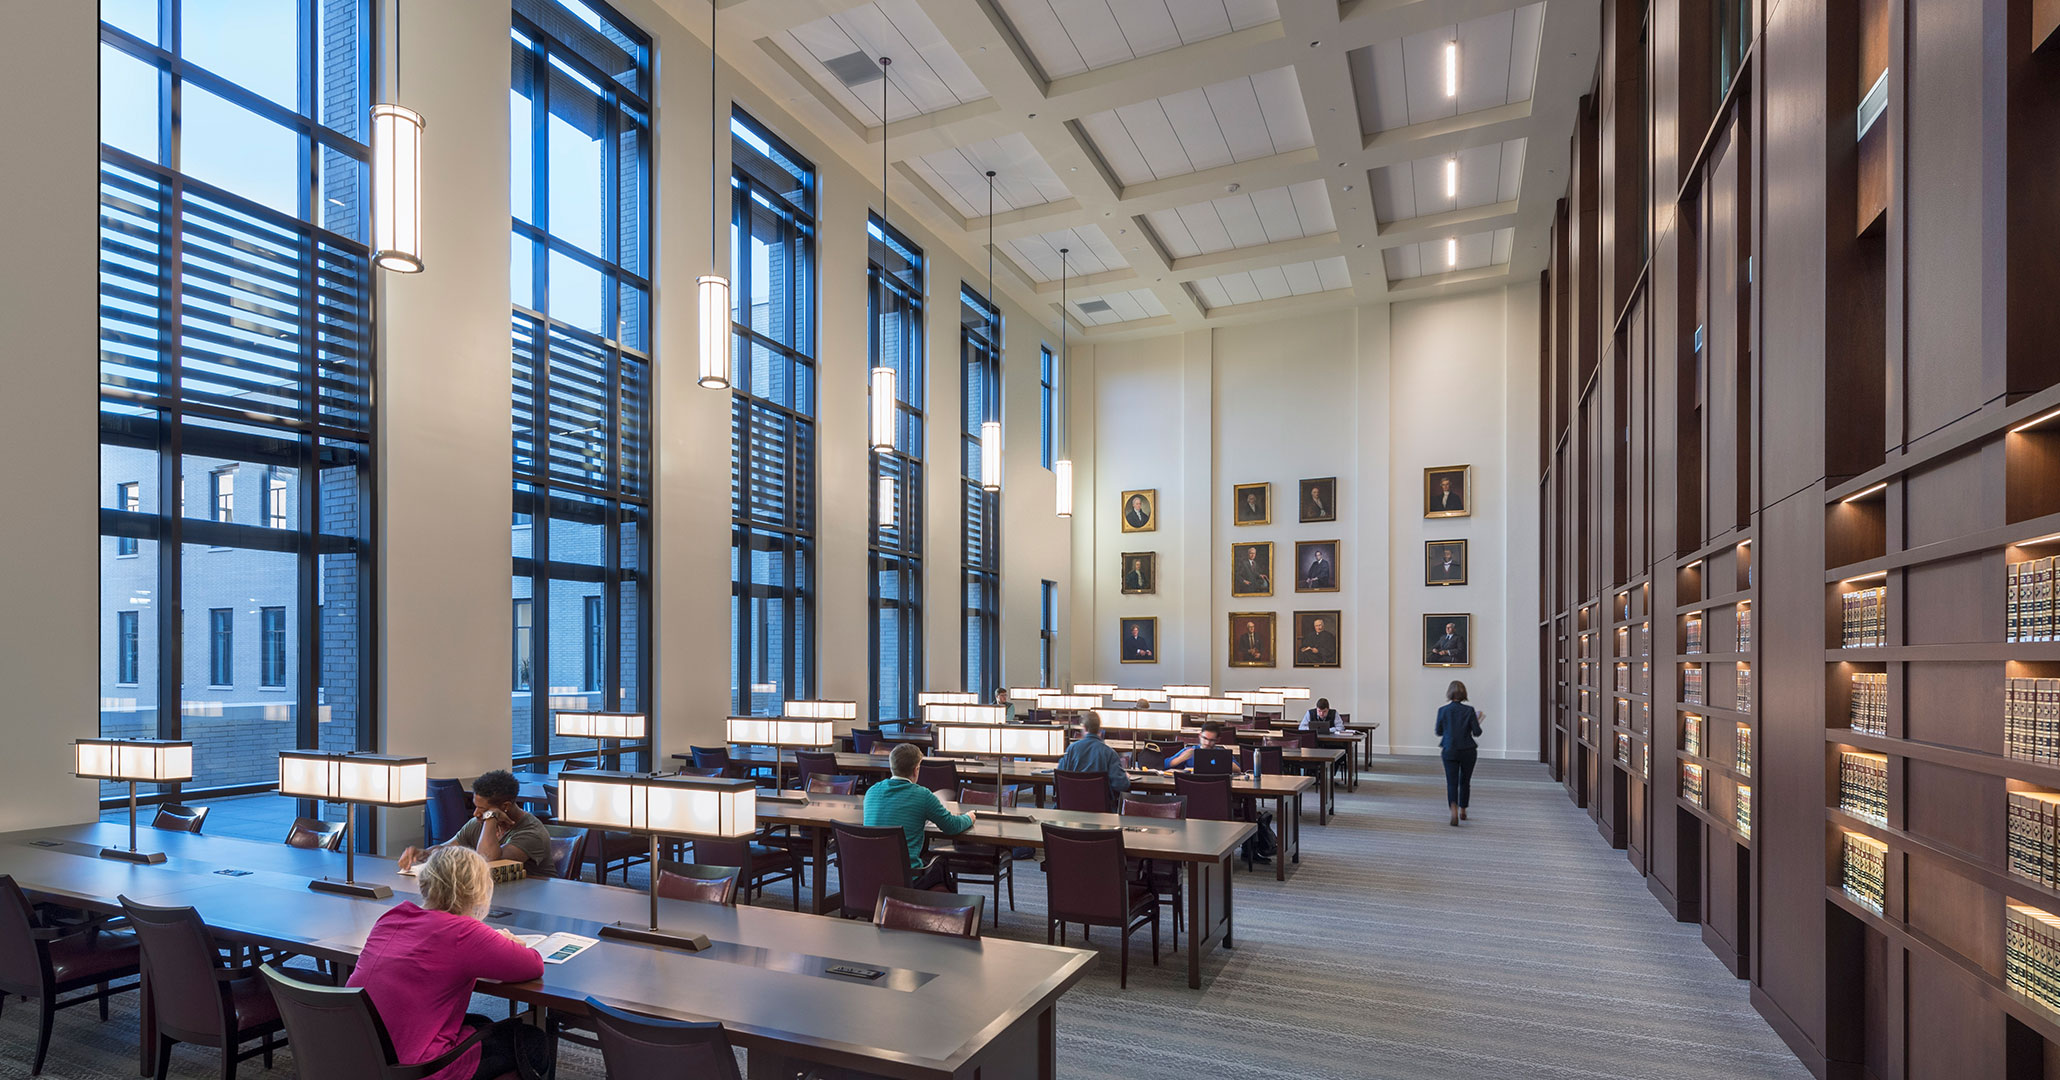 The University of South Carolina worked with Boudreaux architects to design a professional environment.